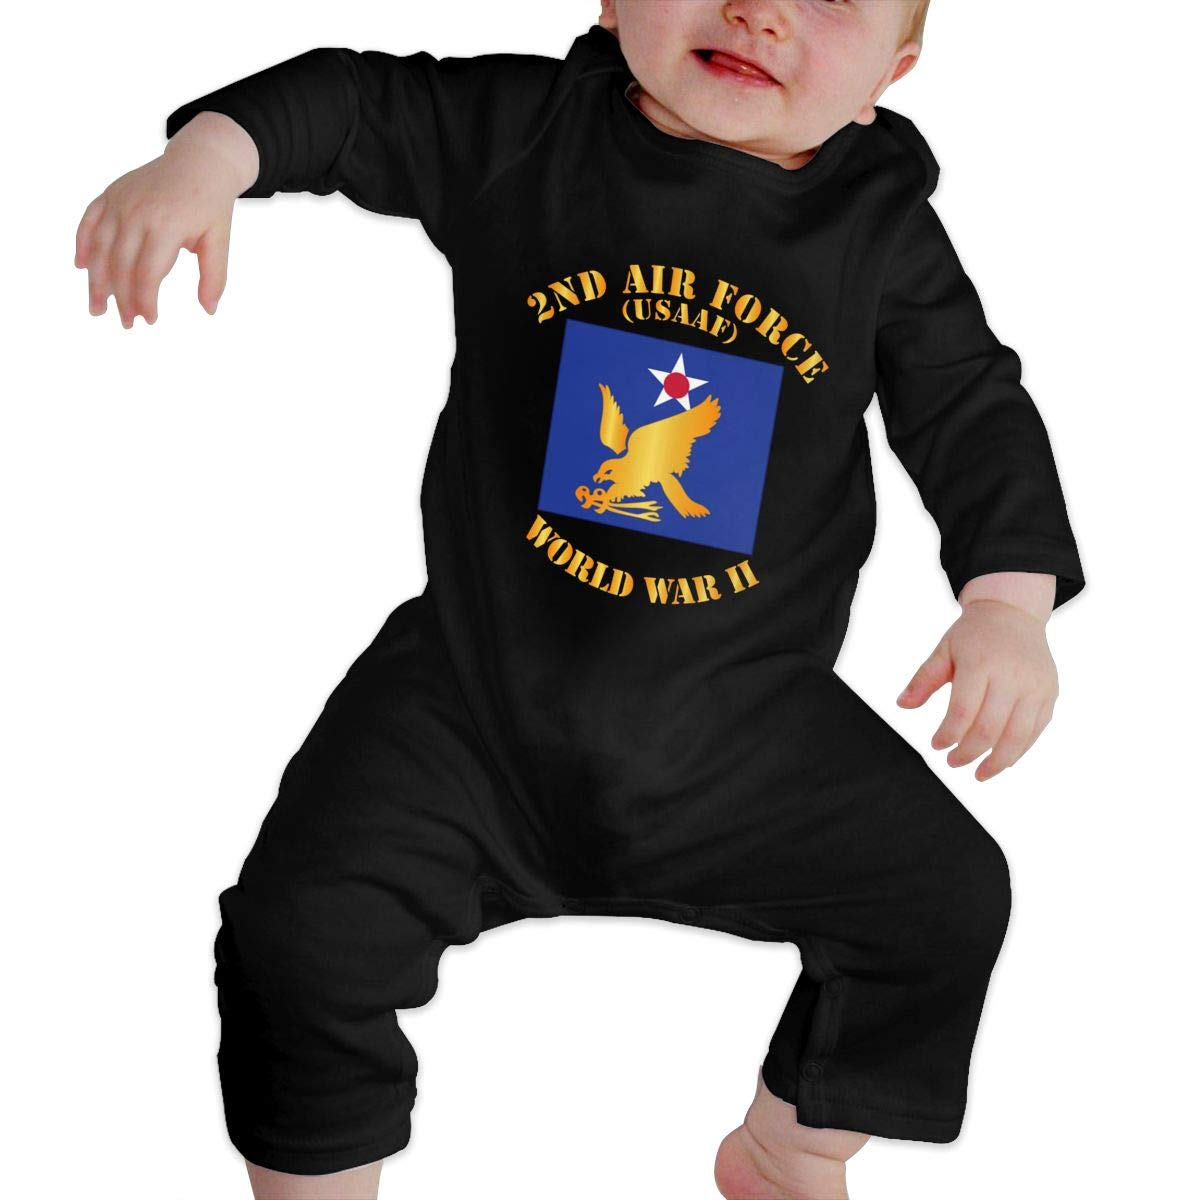 Gsaa AAC 2nd Air Force Baby Long Sleeve Bodysuit Cotton Romper